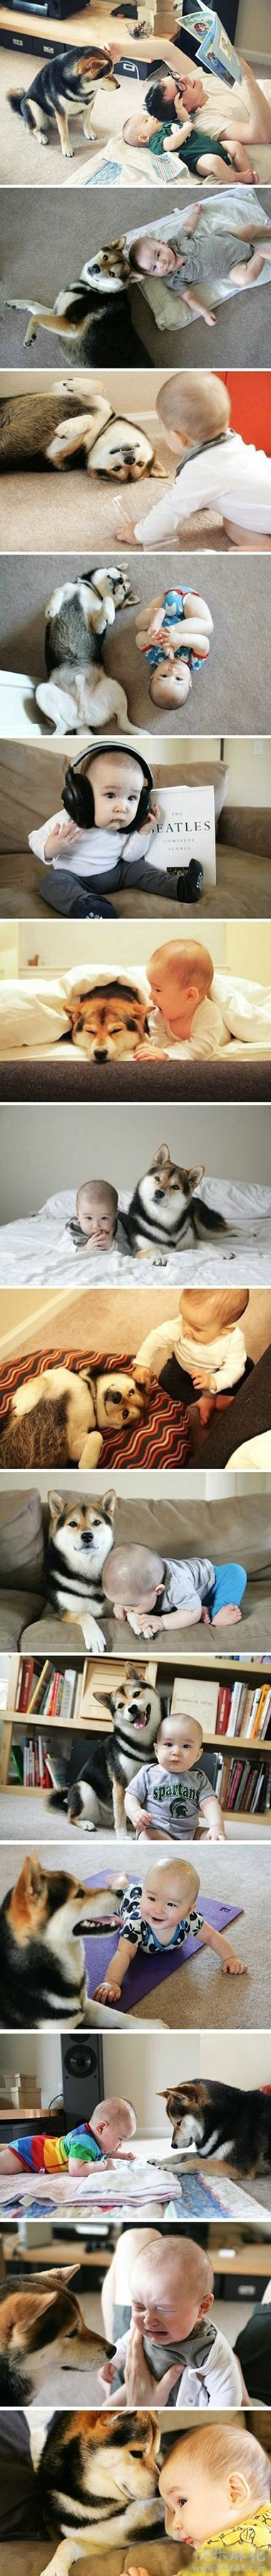 The True Friendship | Shiba Inu is known as great family dog that love kids and does not require much attention. In the pictures bellow you can see confirmation of this, Shiba is extremely careful with kids and make great company for them. PetSetter - via http://bit.ly/epinner